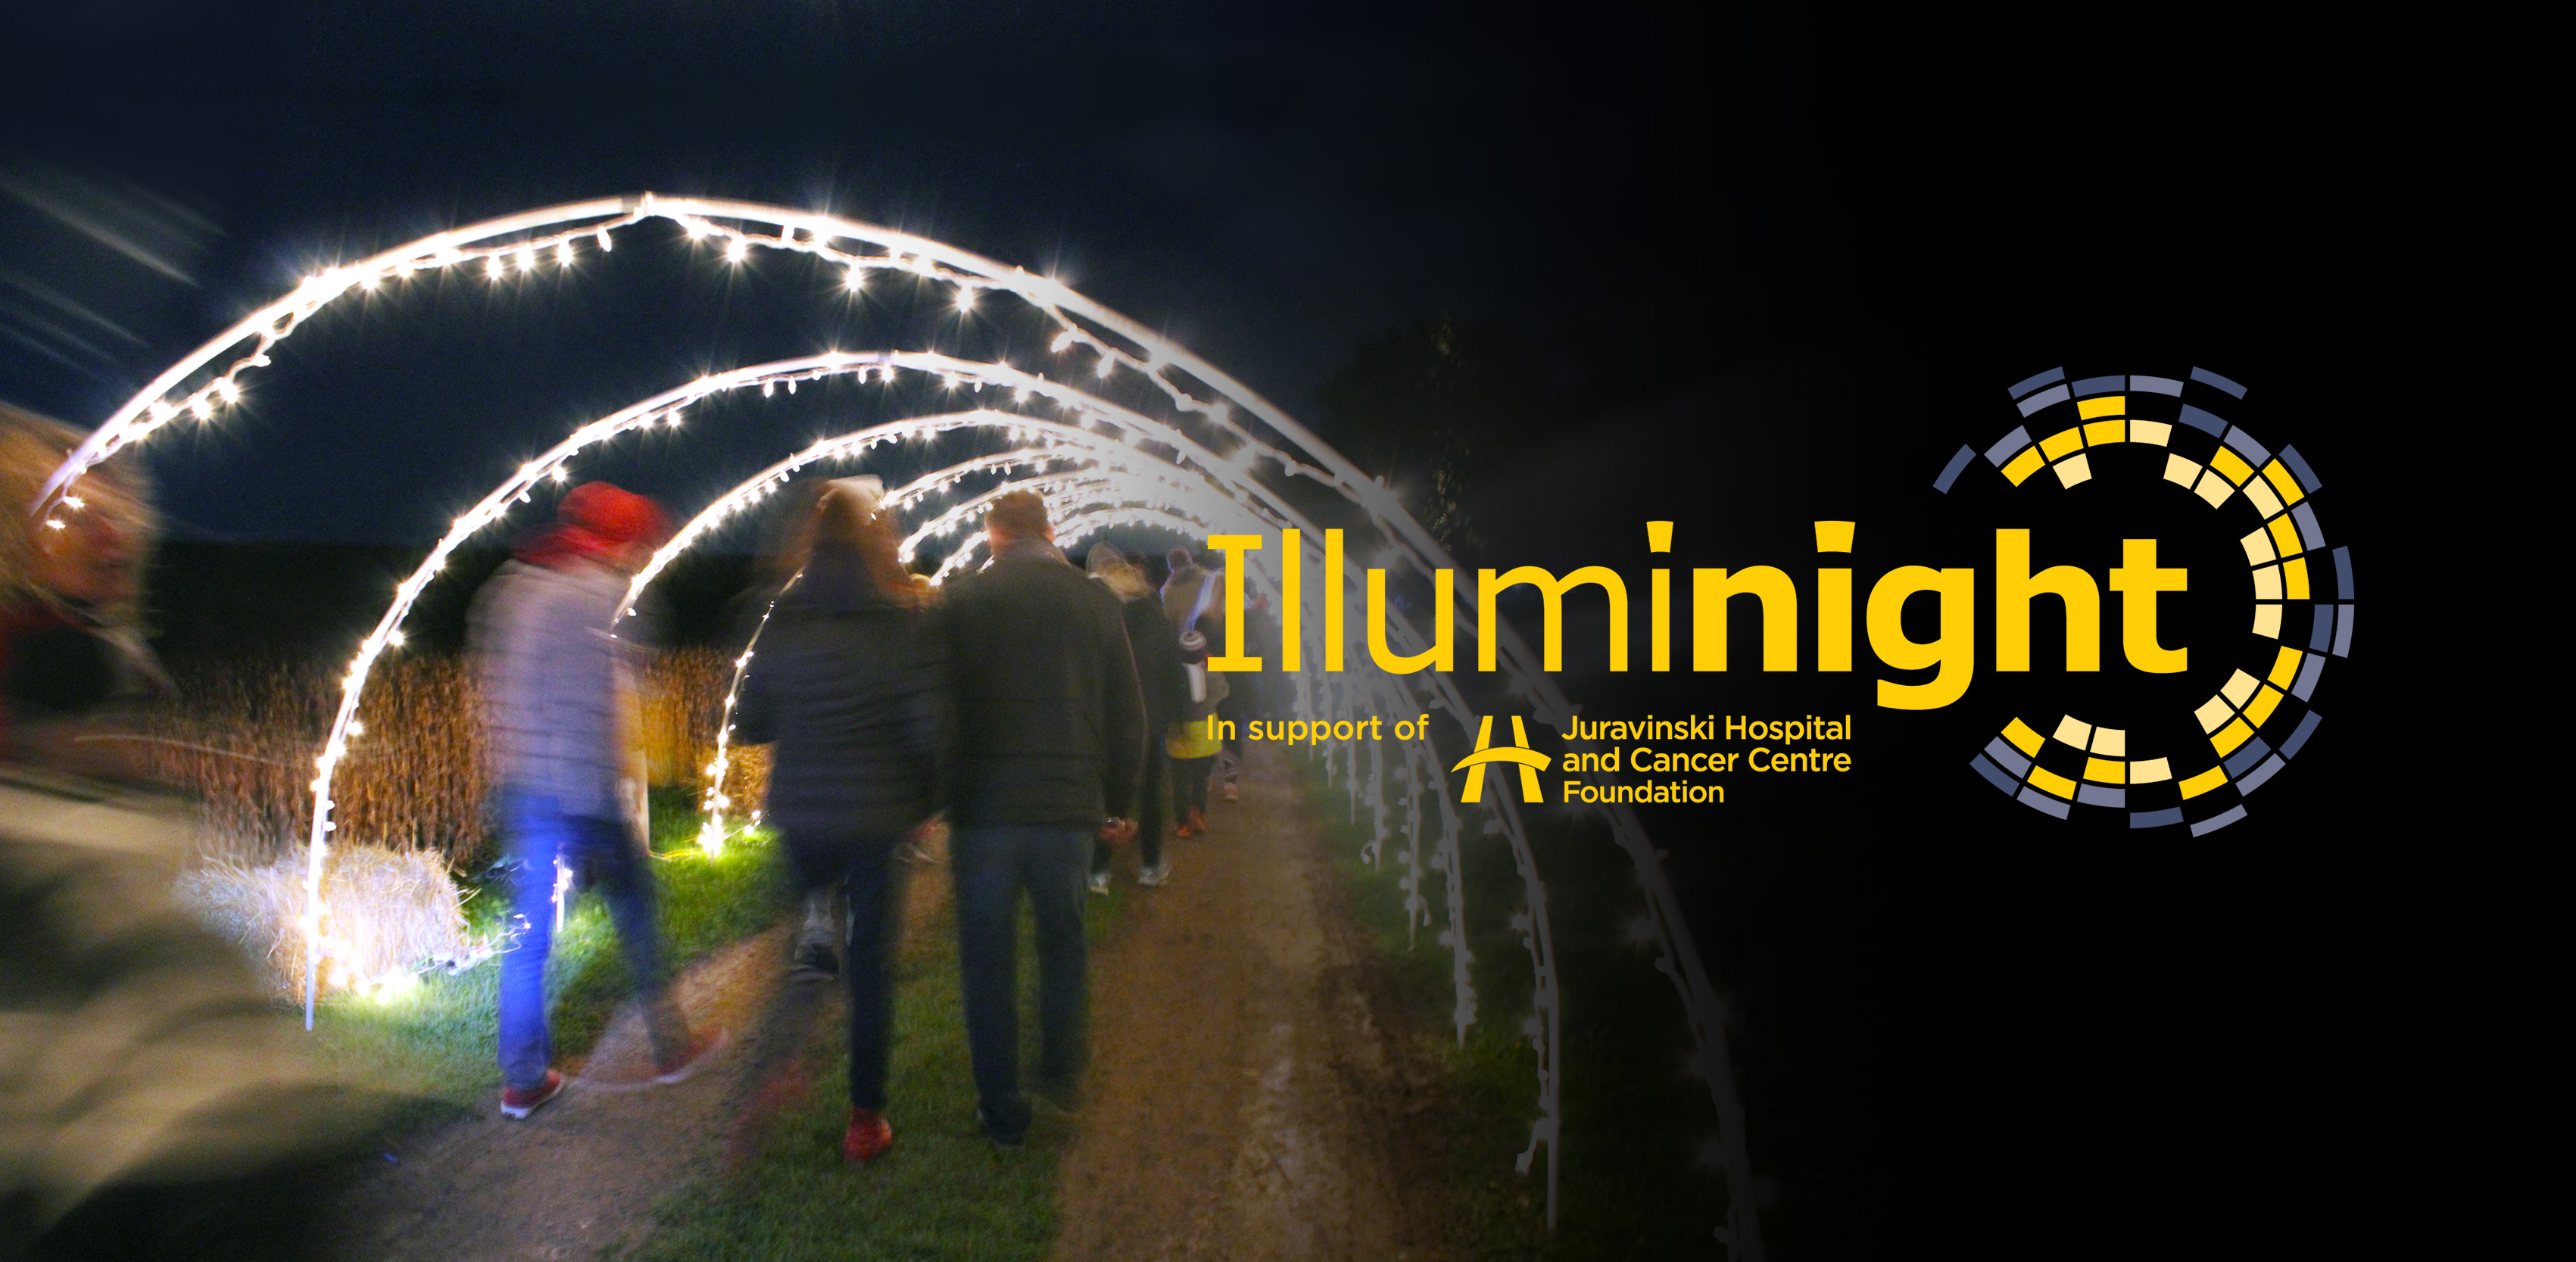 Image of lights on a night walk with the Illuminight logo